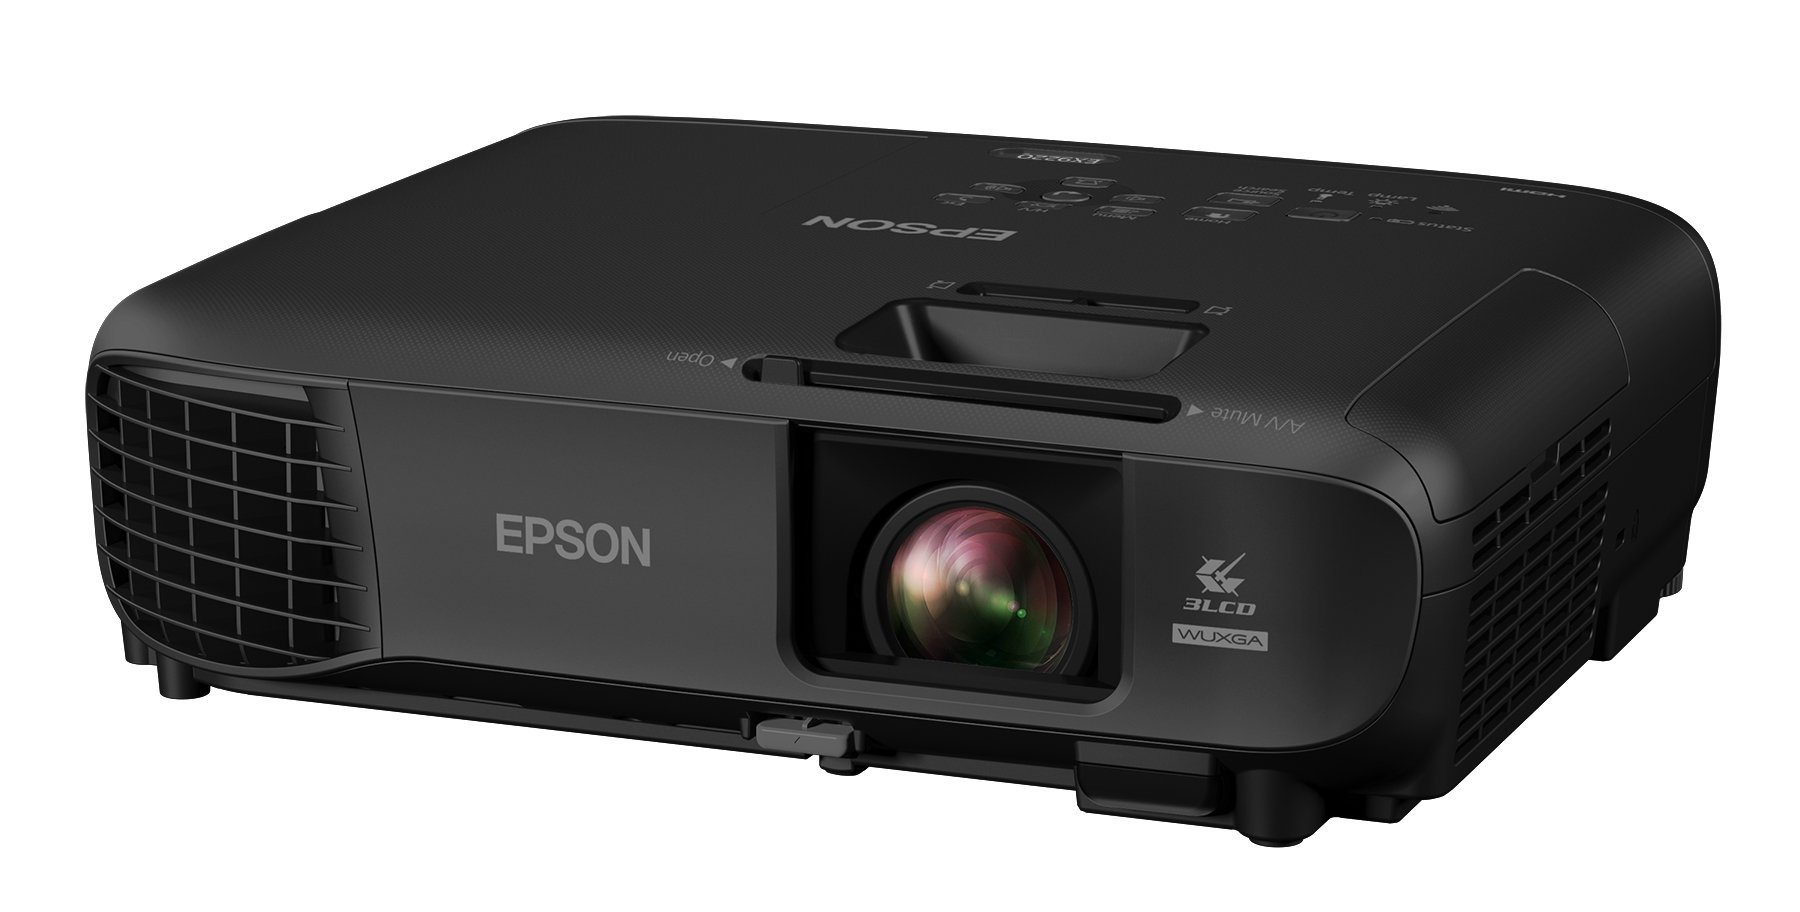 Epson Pro EX9220 1080p+ WUXGA 3,600 lumens color brightness (color light output) 3,600 lumens white brightness (white light output) wireless Miracast HDMI MHL 3LCD projector by Epson